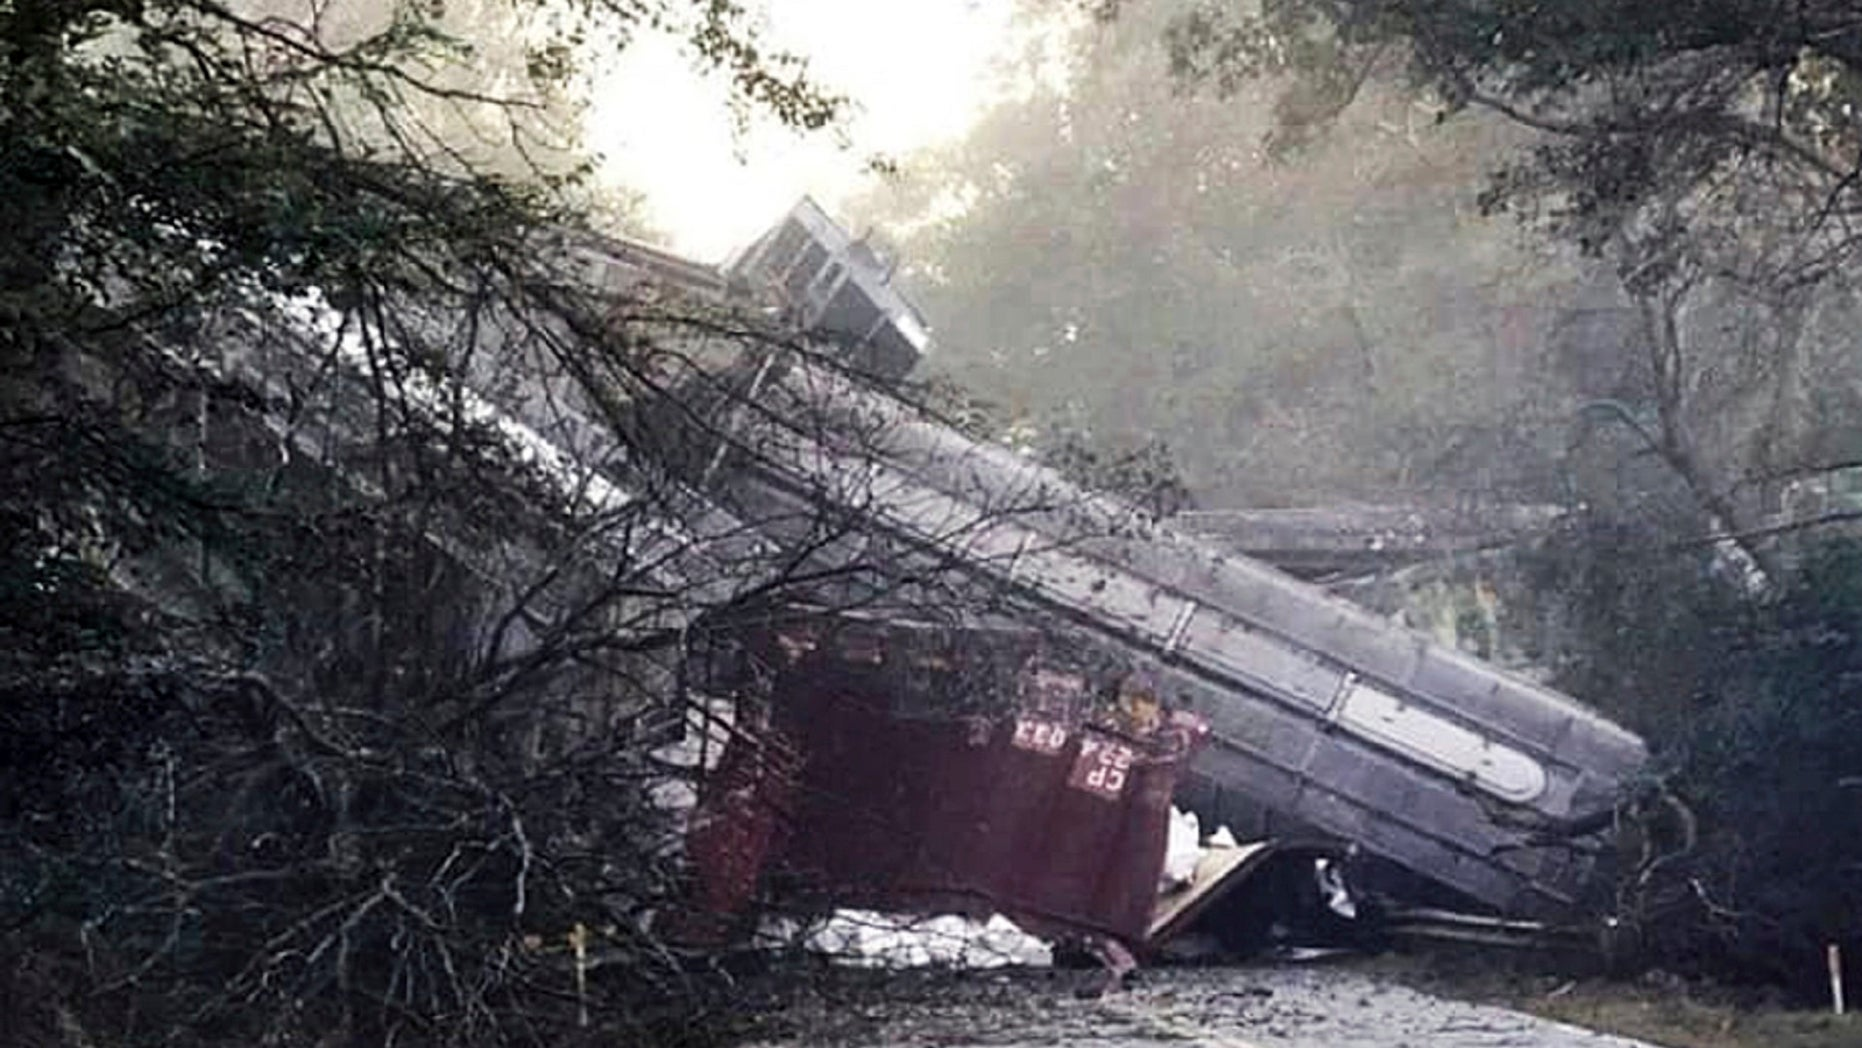 More than two dozen rail cars derailed in Georgia Saturday morning, prompting a temporary evacuation of the surrounding area, CSX Railroad said.